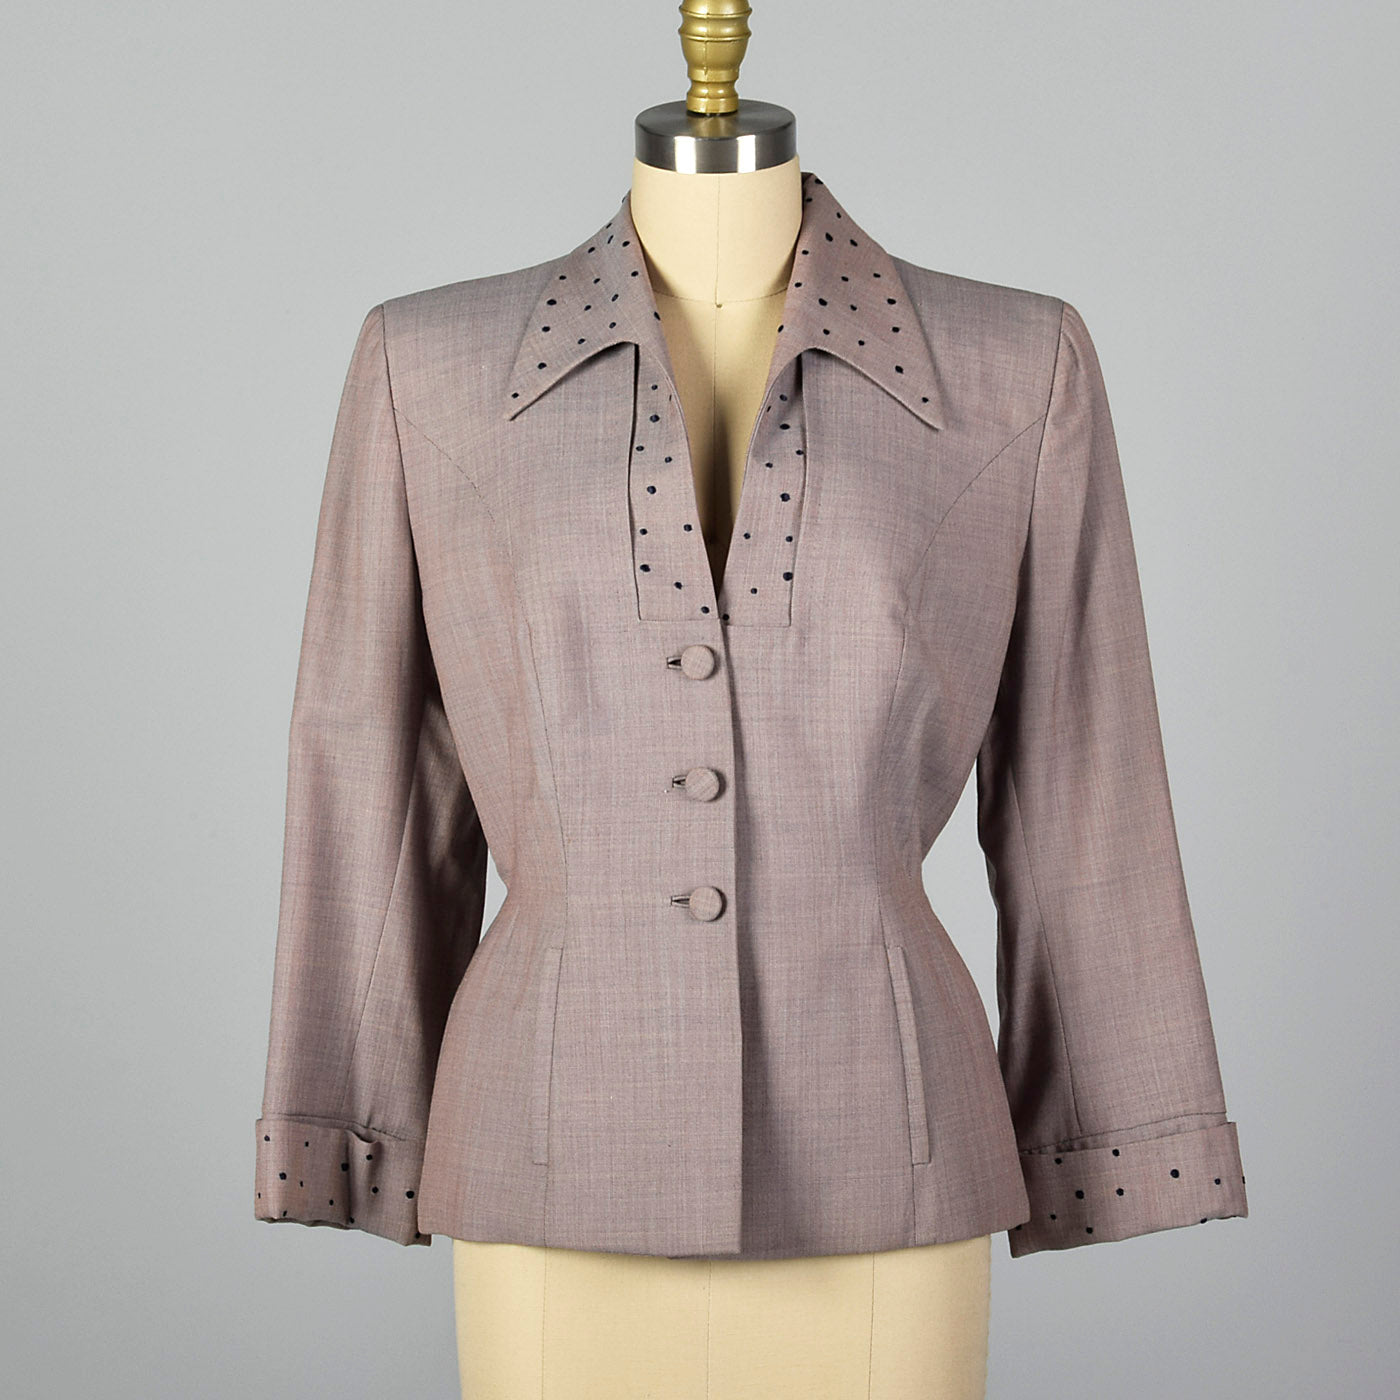 1950s Saks Fifth Avenue Edith Small Blazer with Polka Dot Details